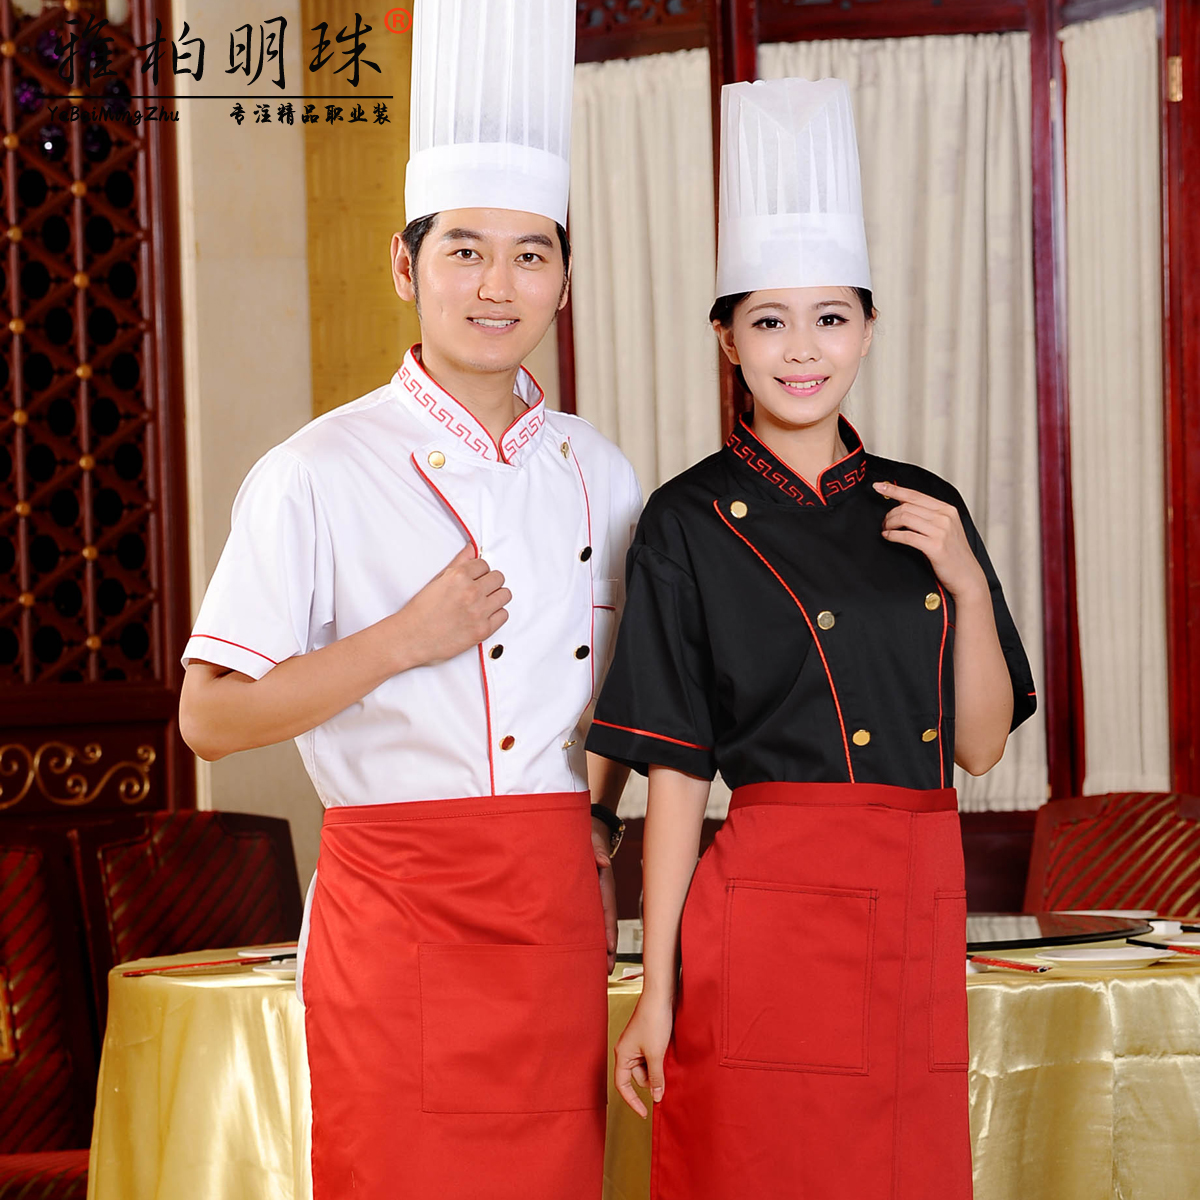 The hotel cafeteria chef chef clothing short sleeve white chef cooks summer clothes work clothes work clothes embroidered